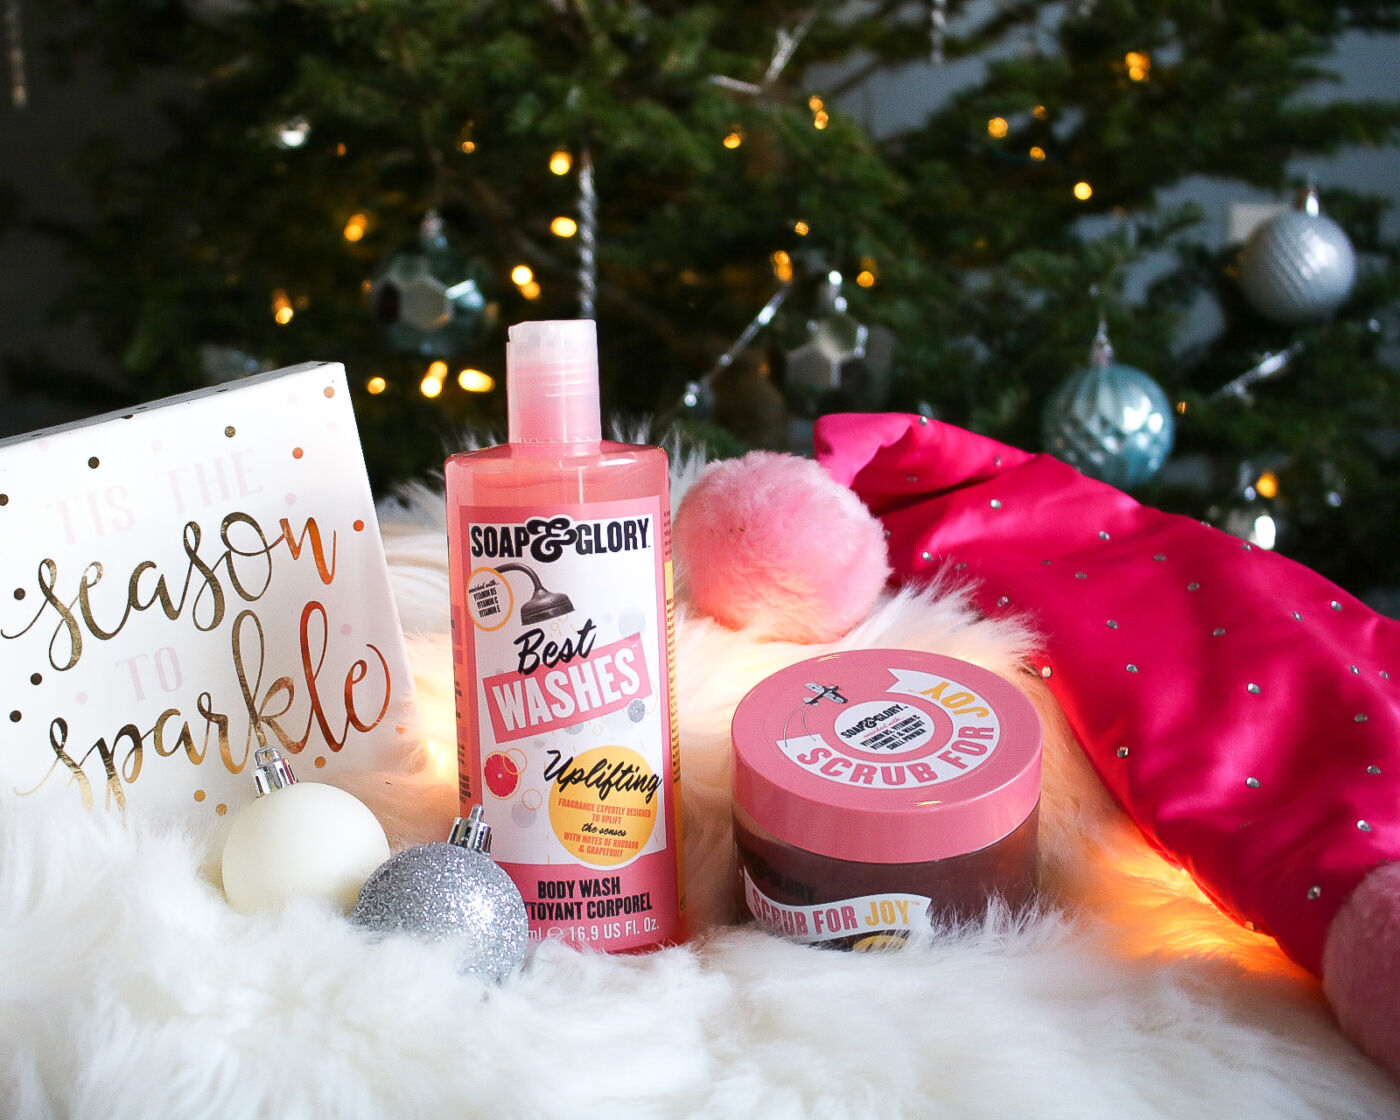 soap & glory best washes, scrub for joy holiday products